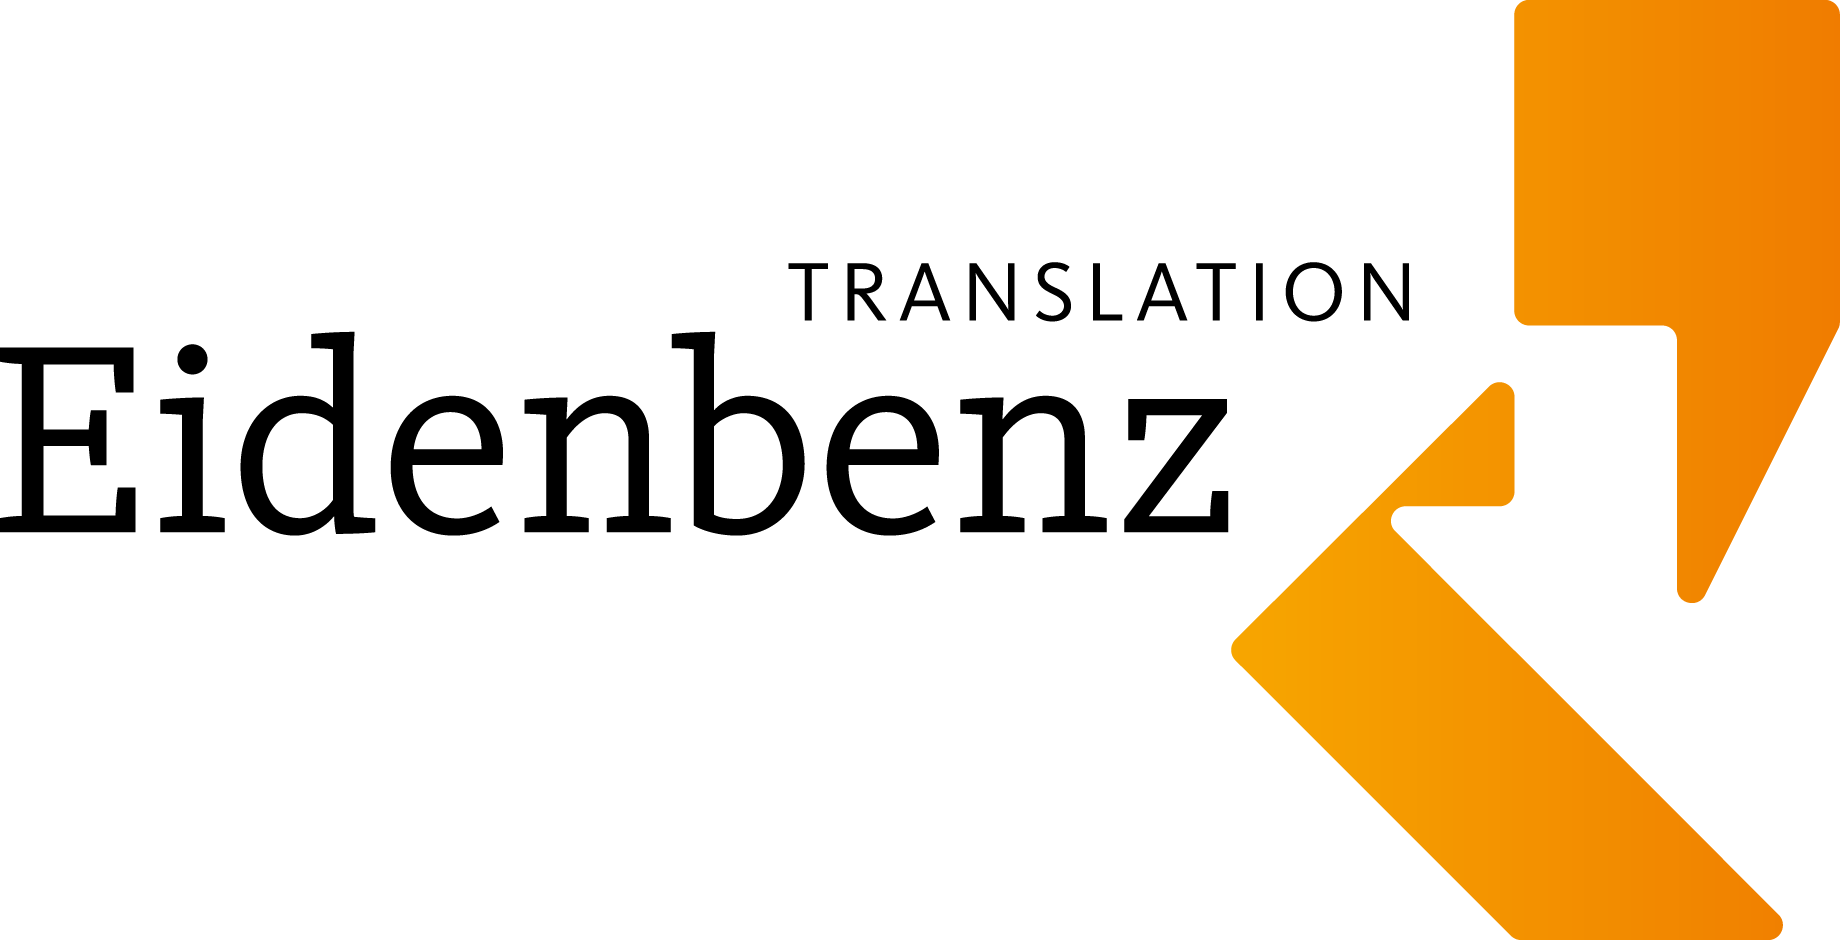 Eidenbenz Translation